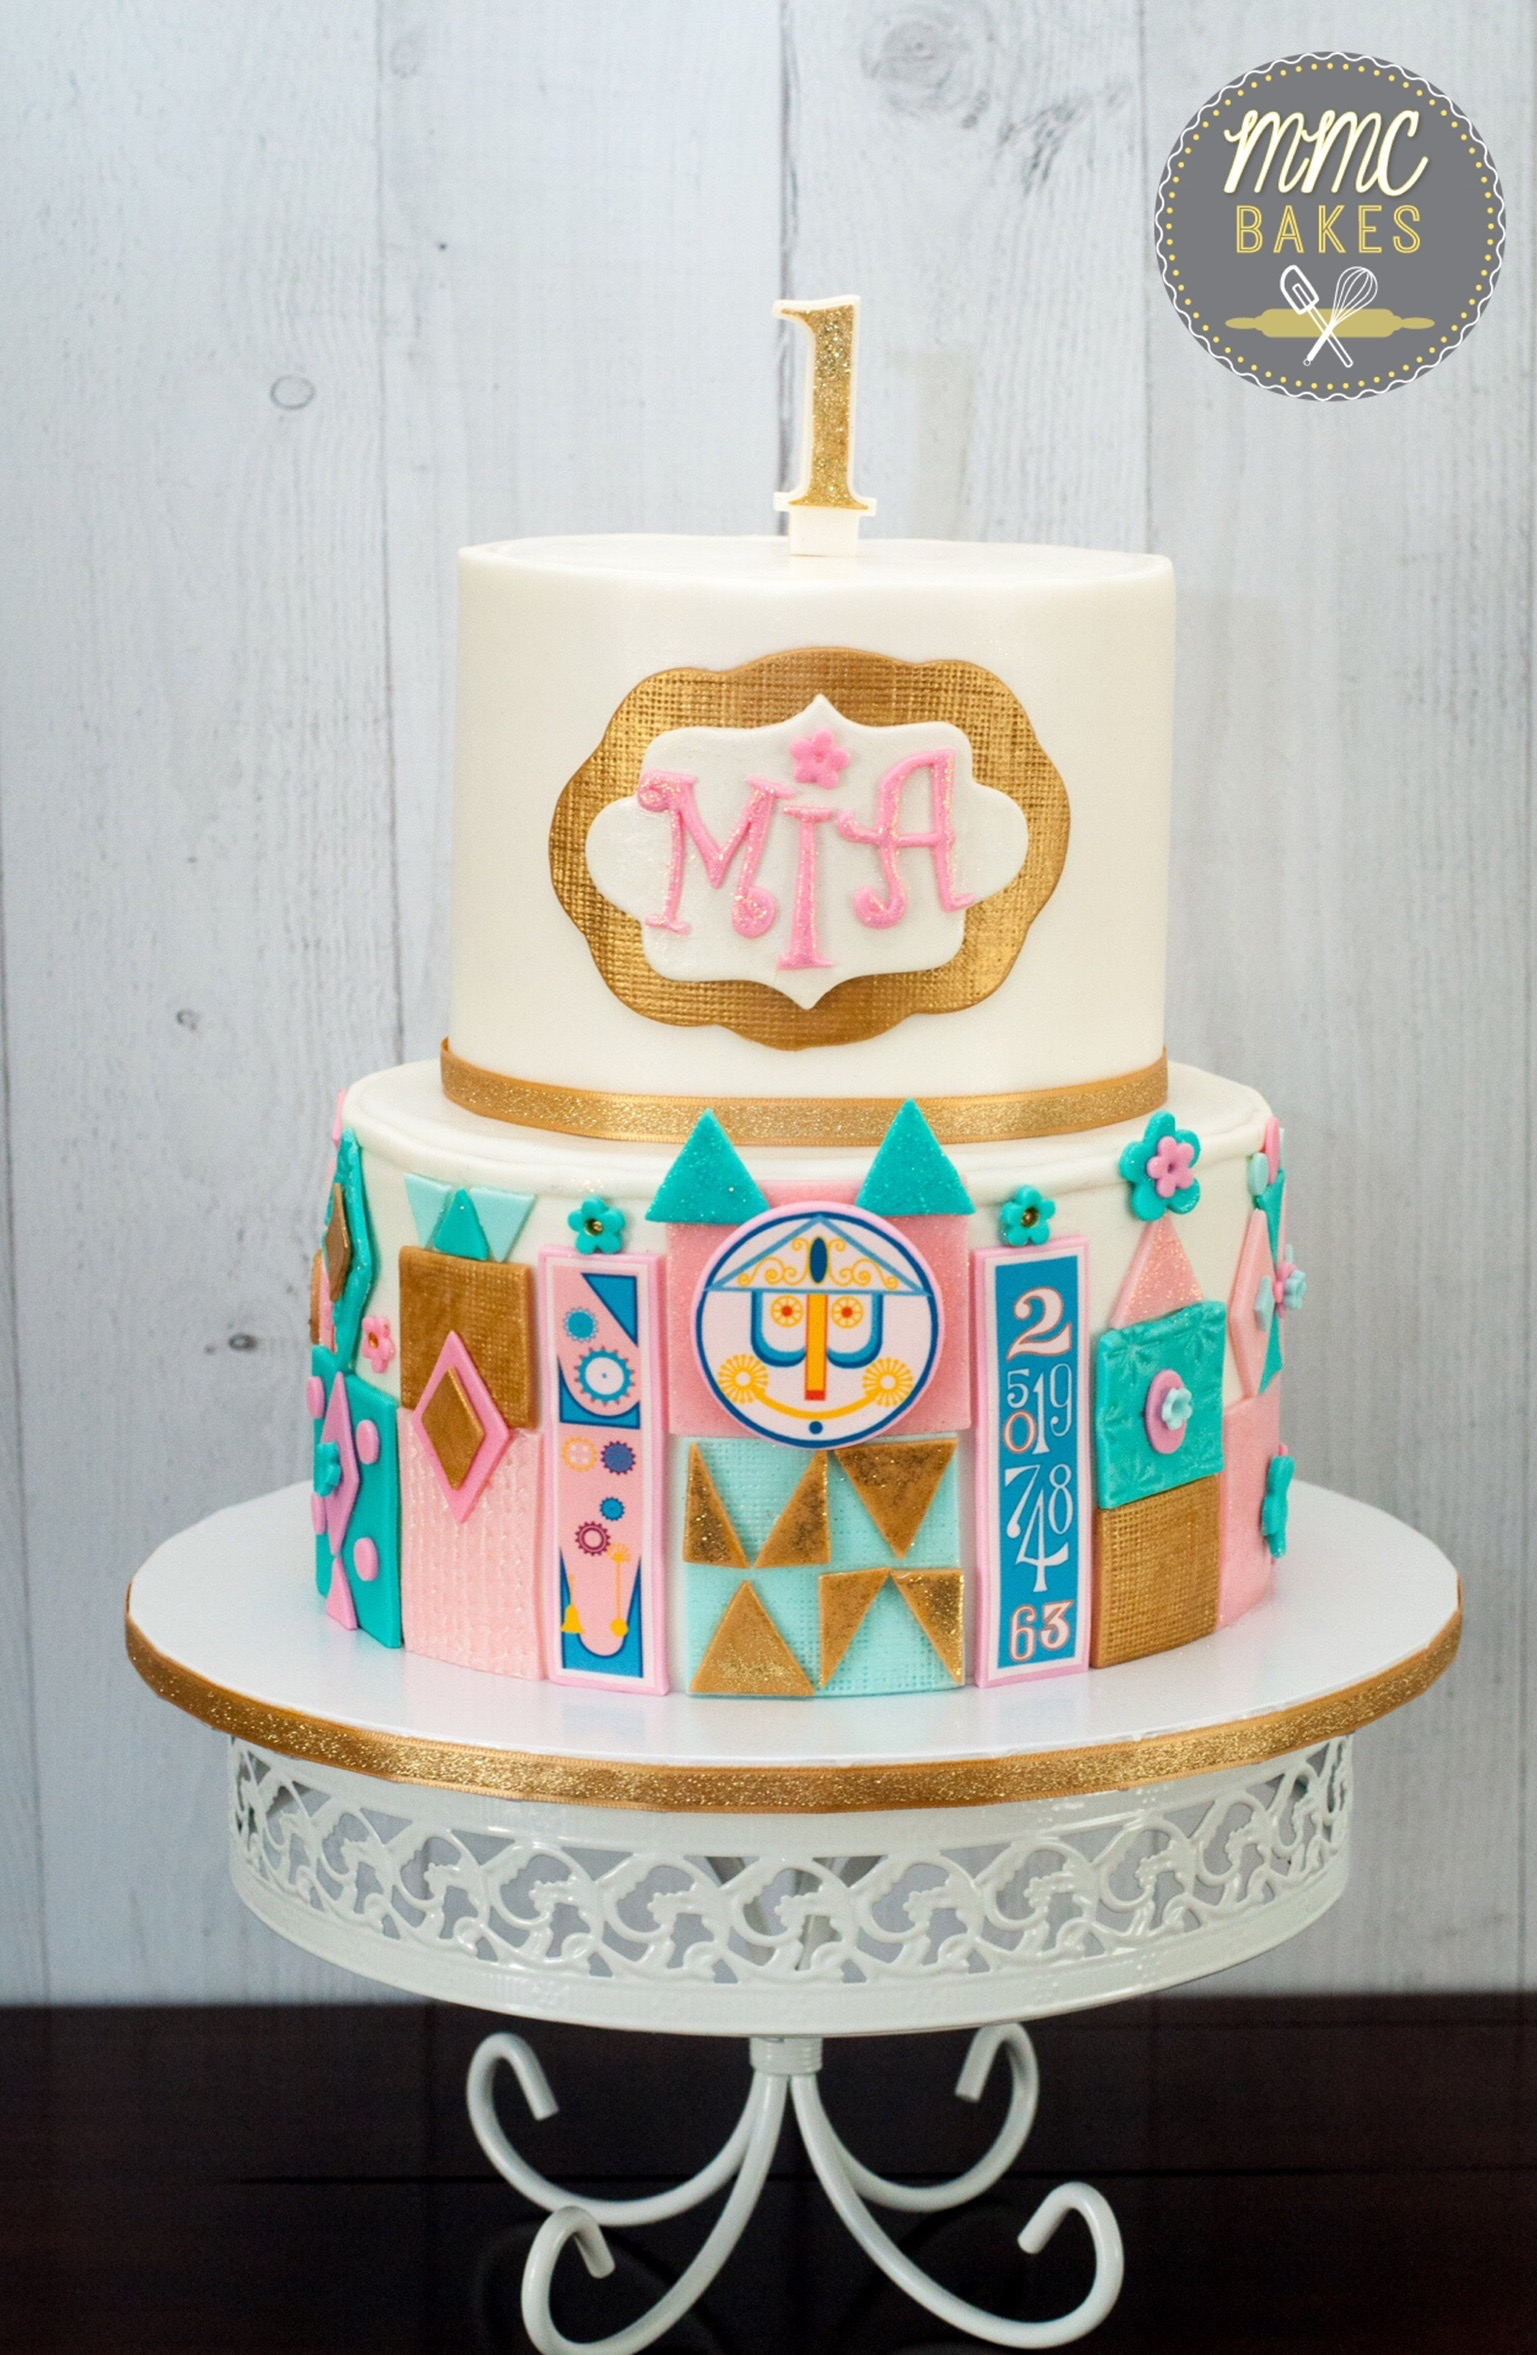 it's a small world cake, it's a small world, mmc bakes, custom cakes, san diego, chula vista, disney cake, fondant cake, 1st birthday